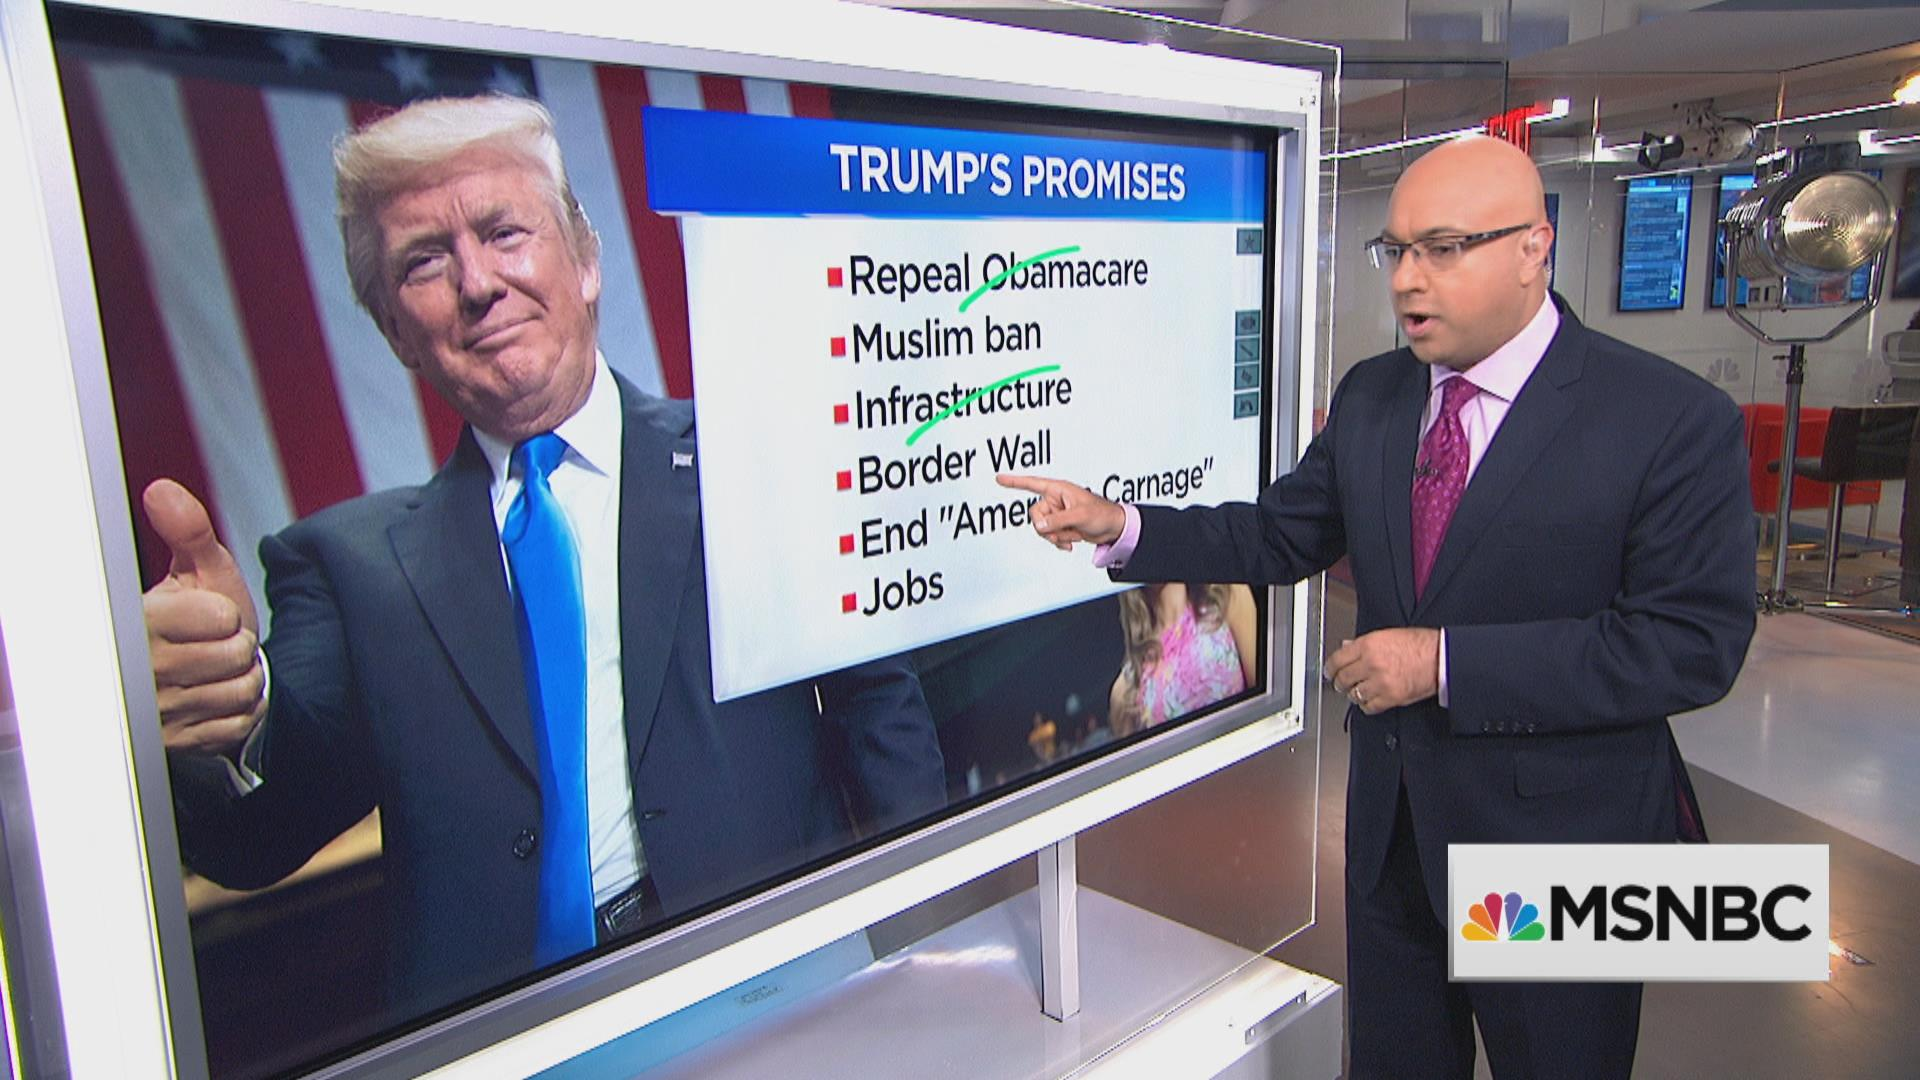 Tracking Trump's promises after Obamacare...